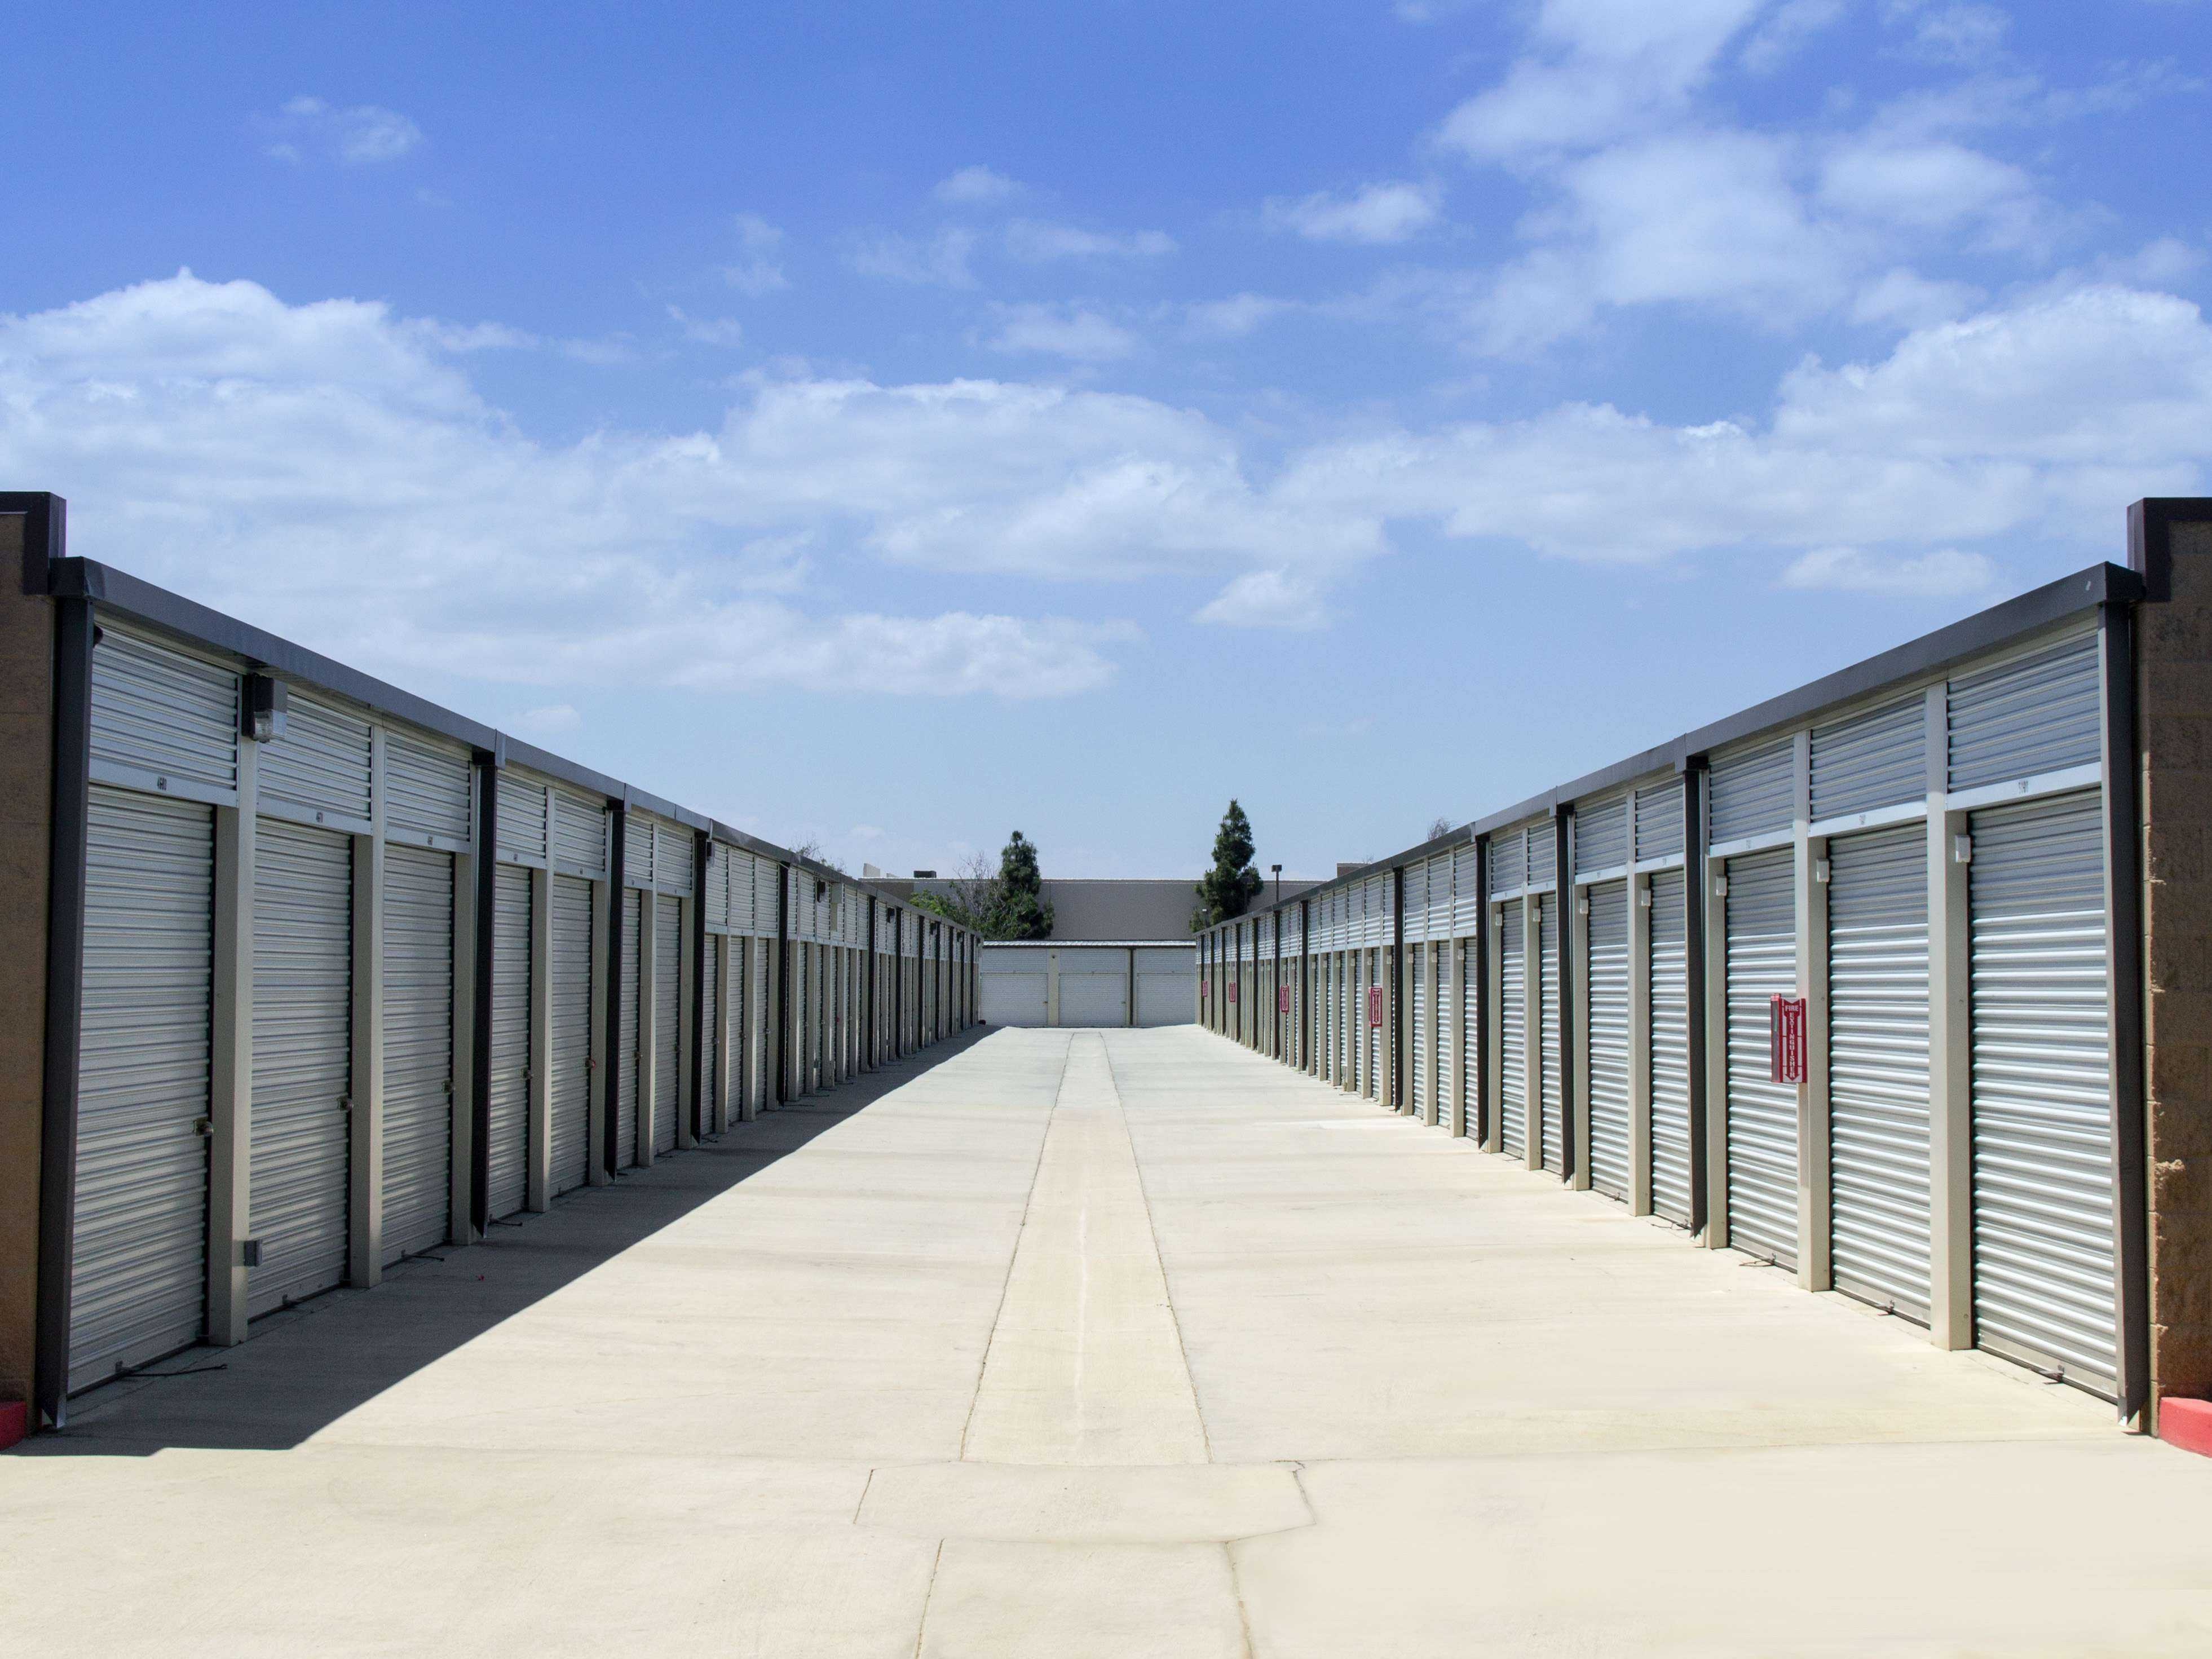 A long row of large outdoor storage units with white doors in a clean, open area